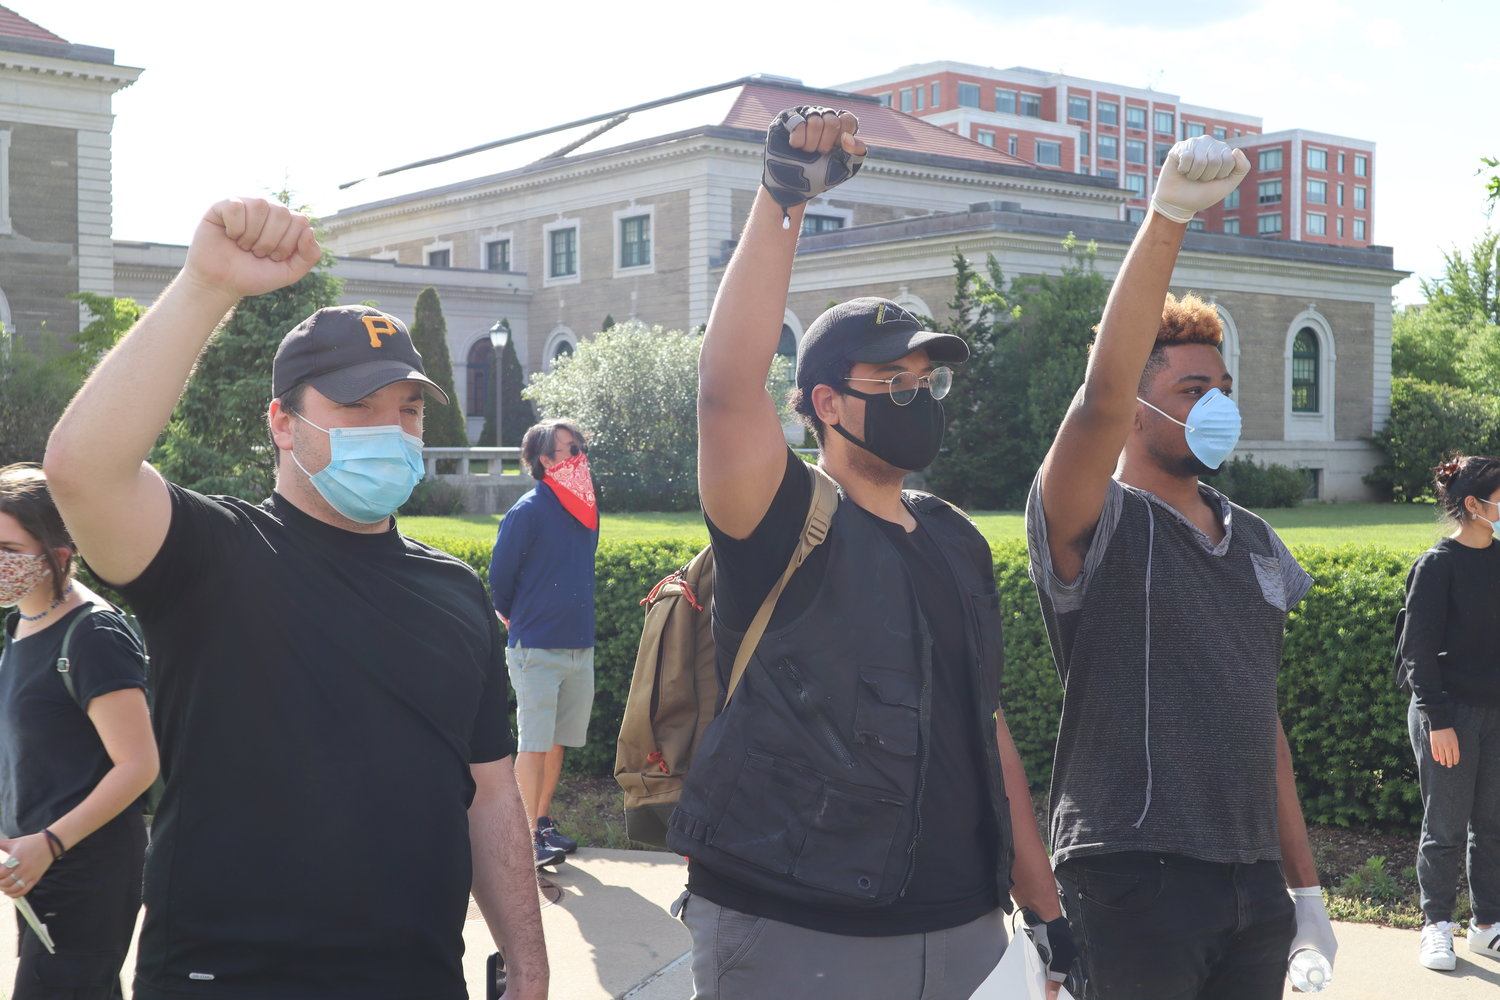 Michael Fernandez, Tyler Belo and James Merchant raised their fists in solidarity.